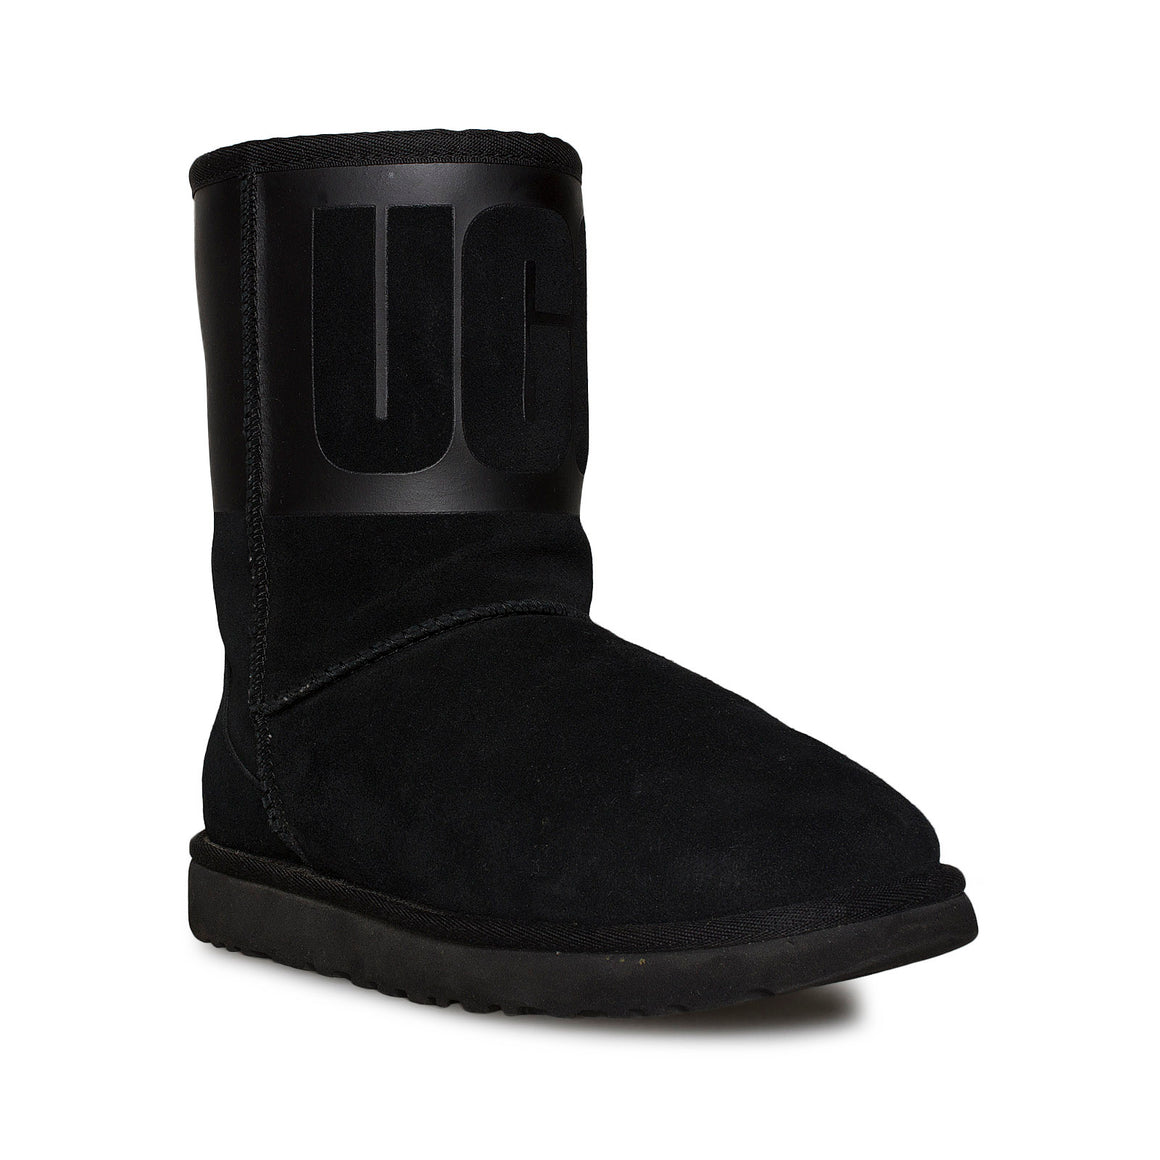 UGG Classic Short UGG Rubber Graphic Black Boots - Women's